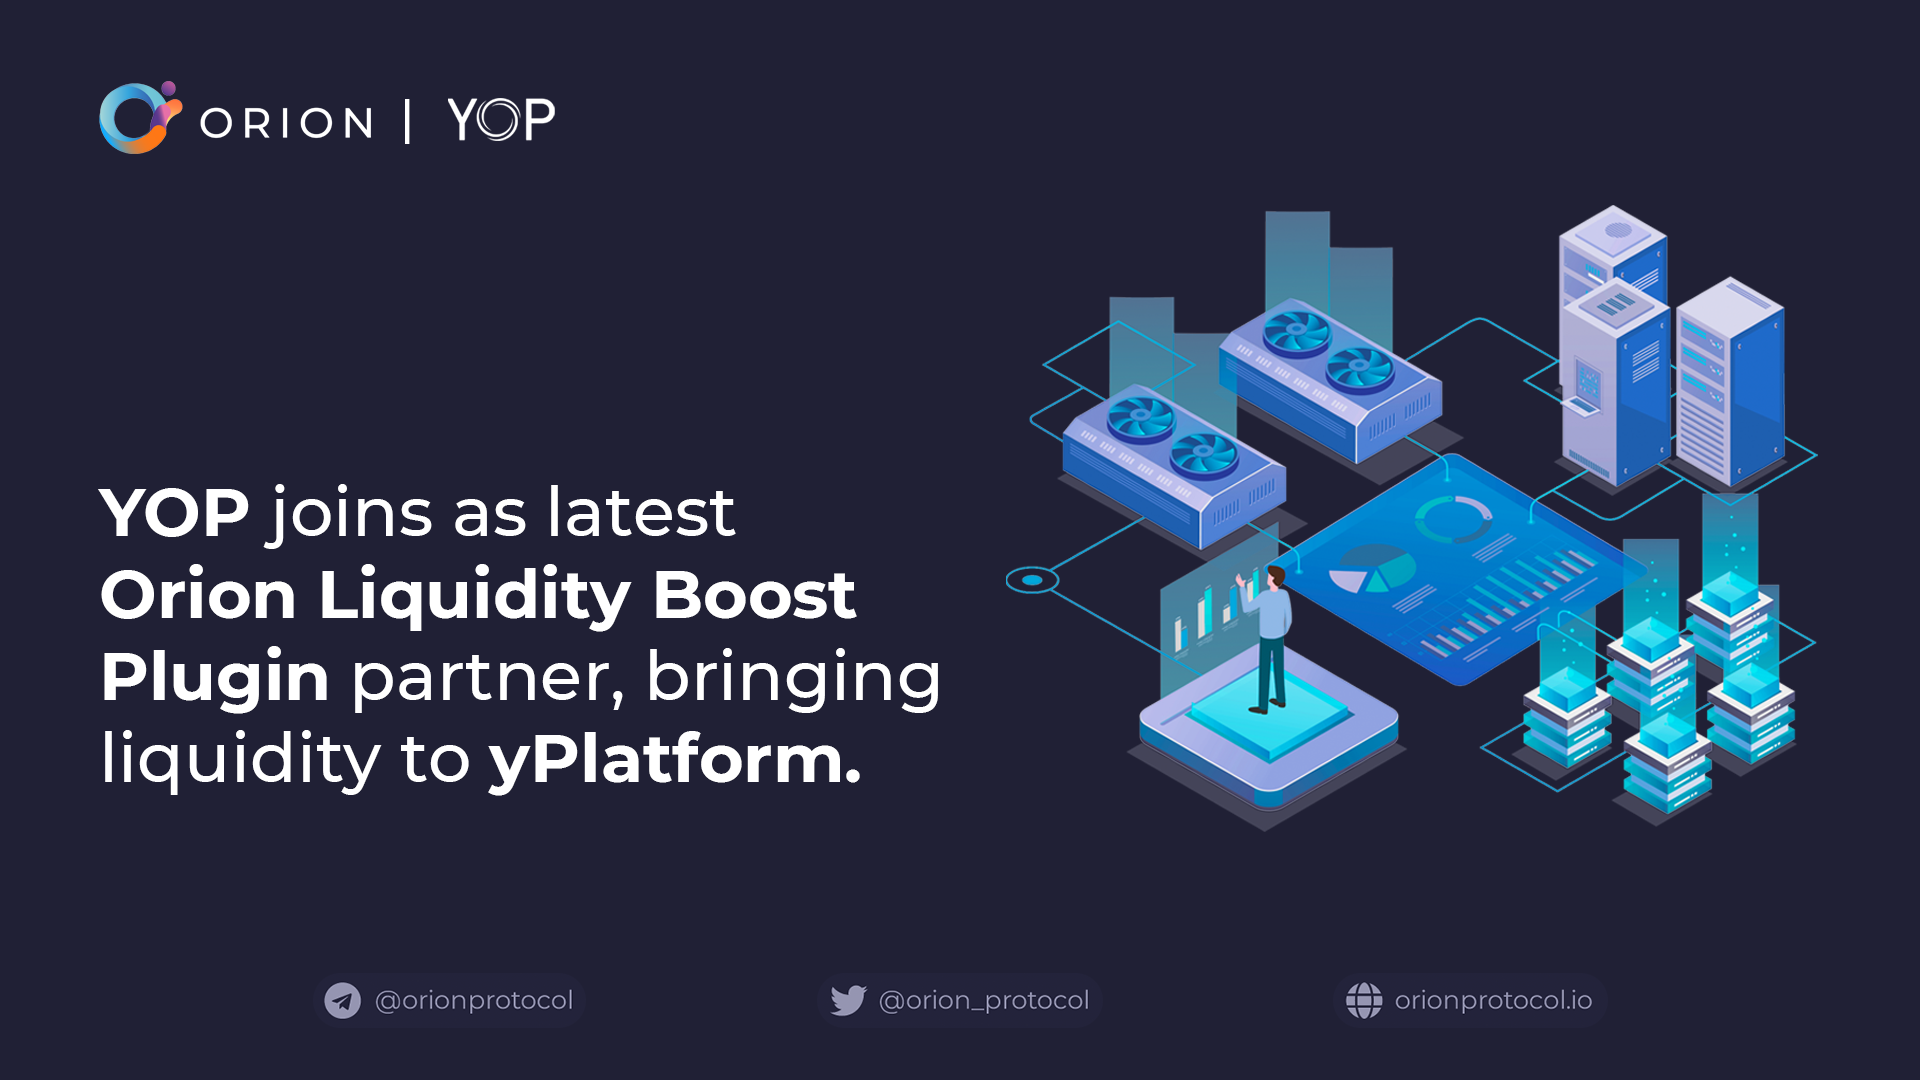 YOP joins as Liquidity Boost Plugin partner